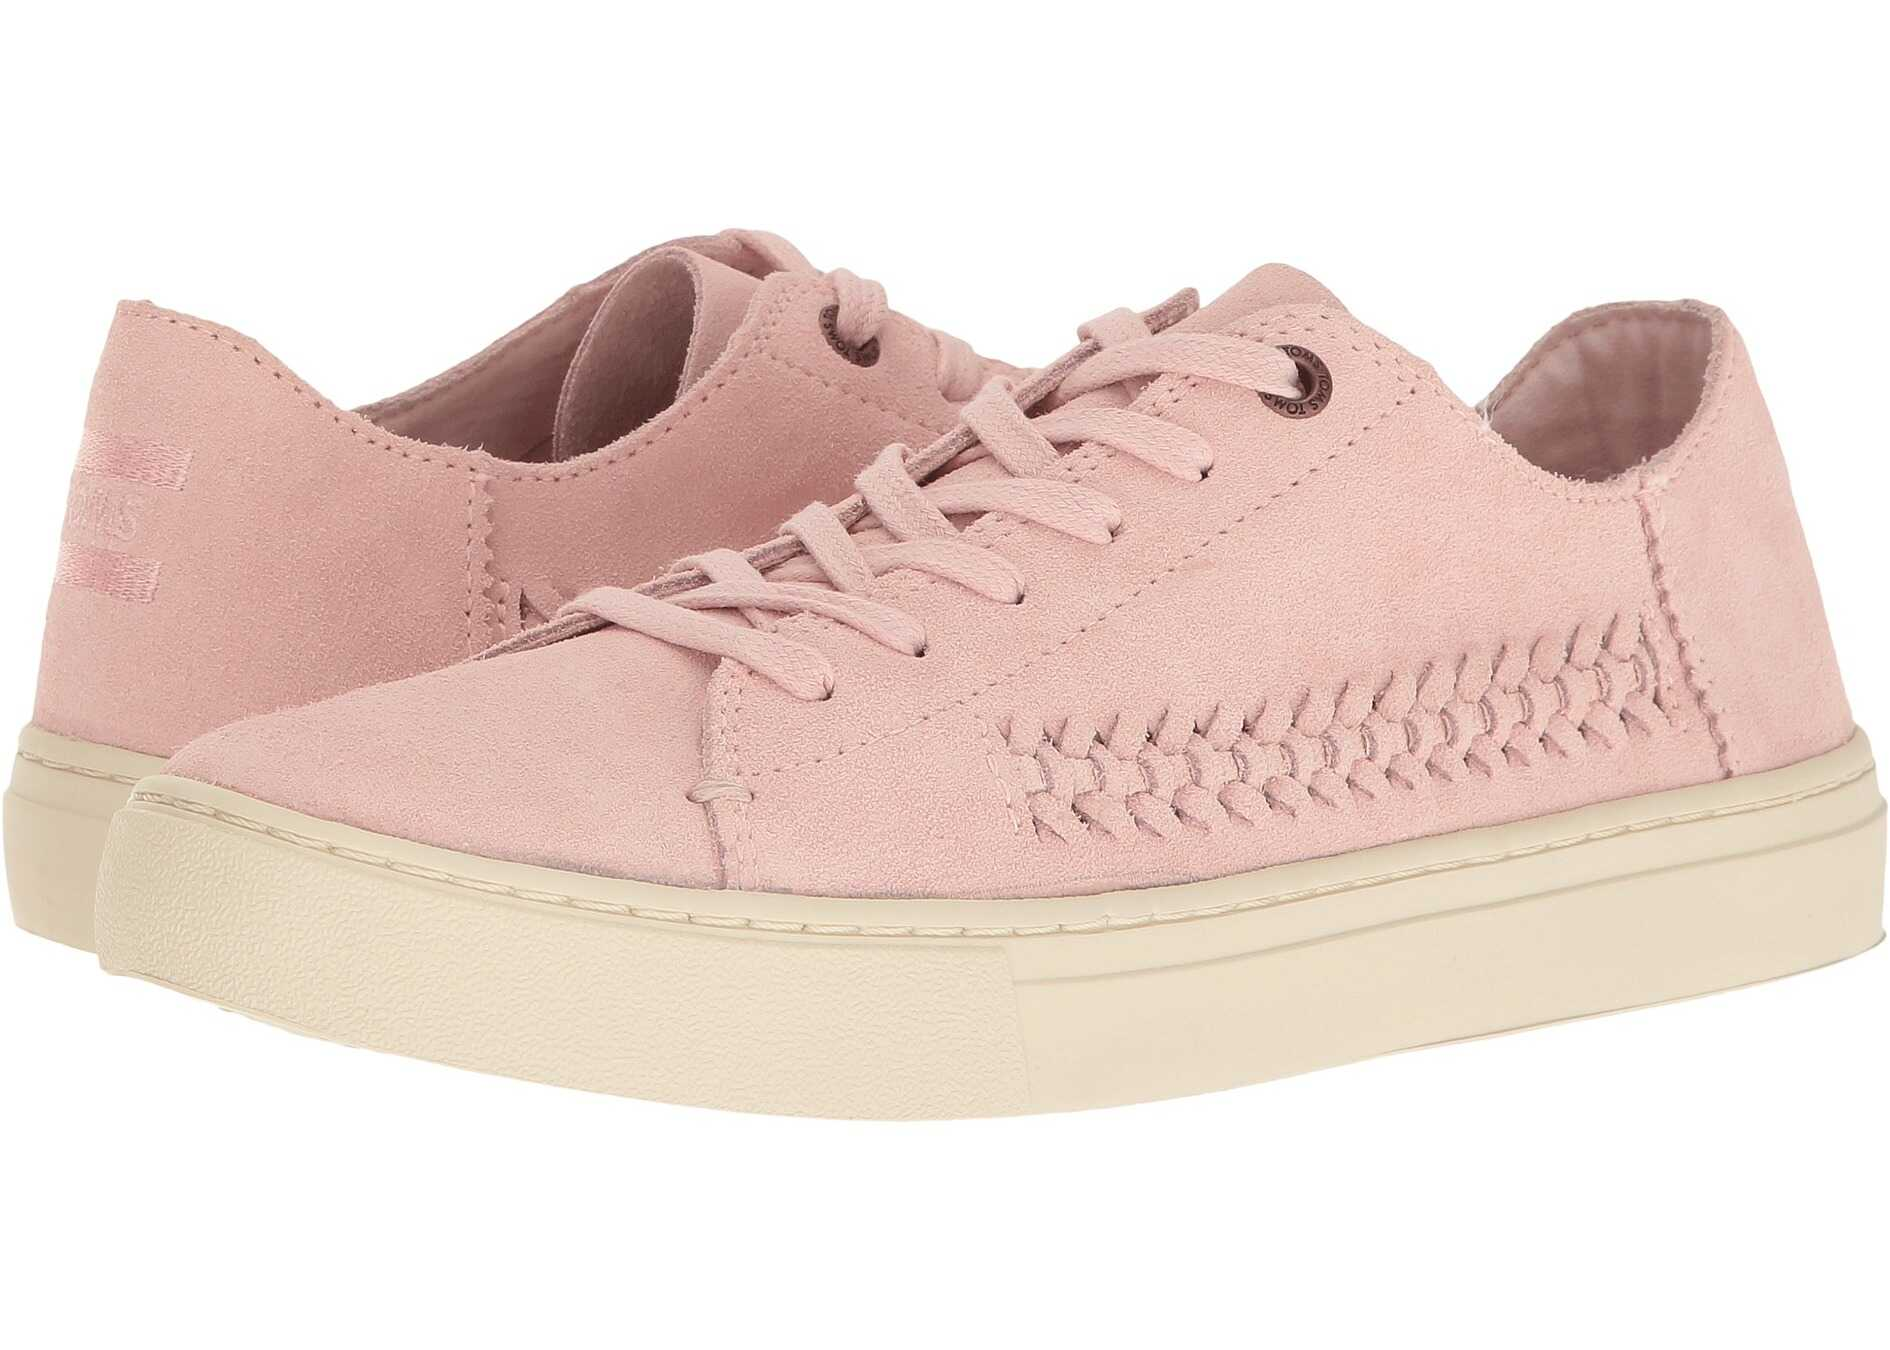 TOMS Lenox Sneaker Pale Pink Deconstructed Suede/Woven Panel